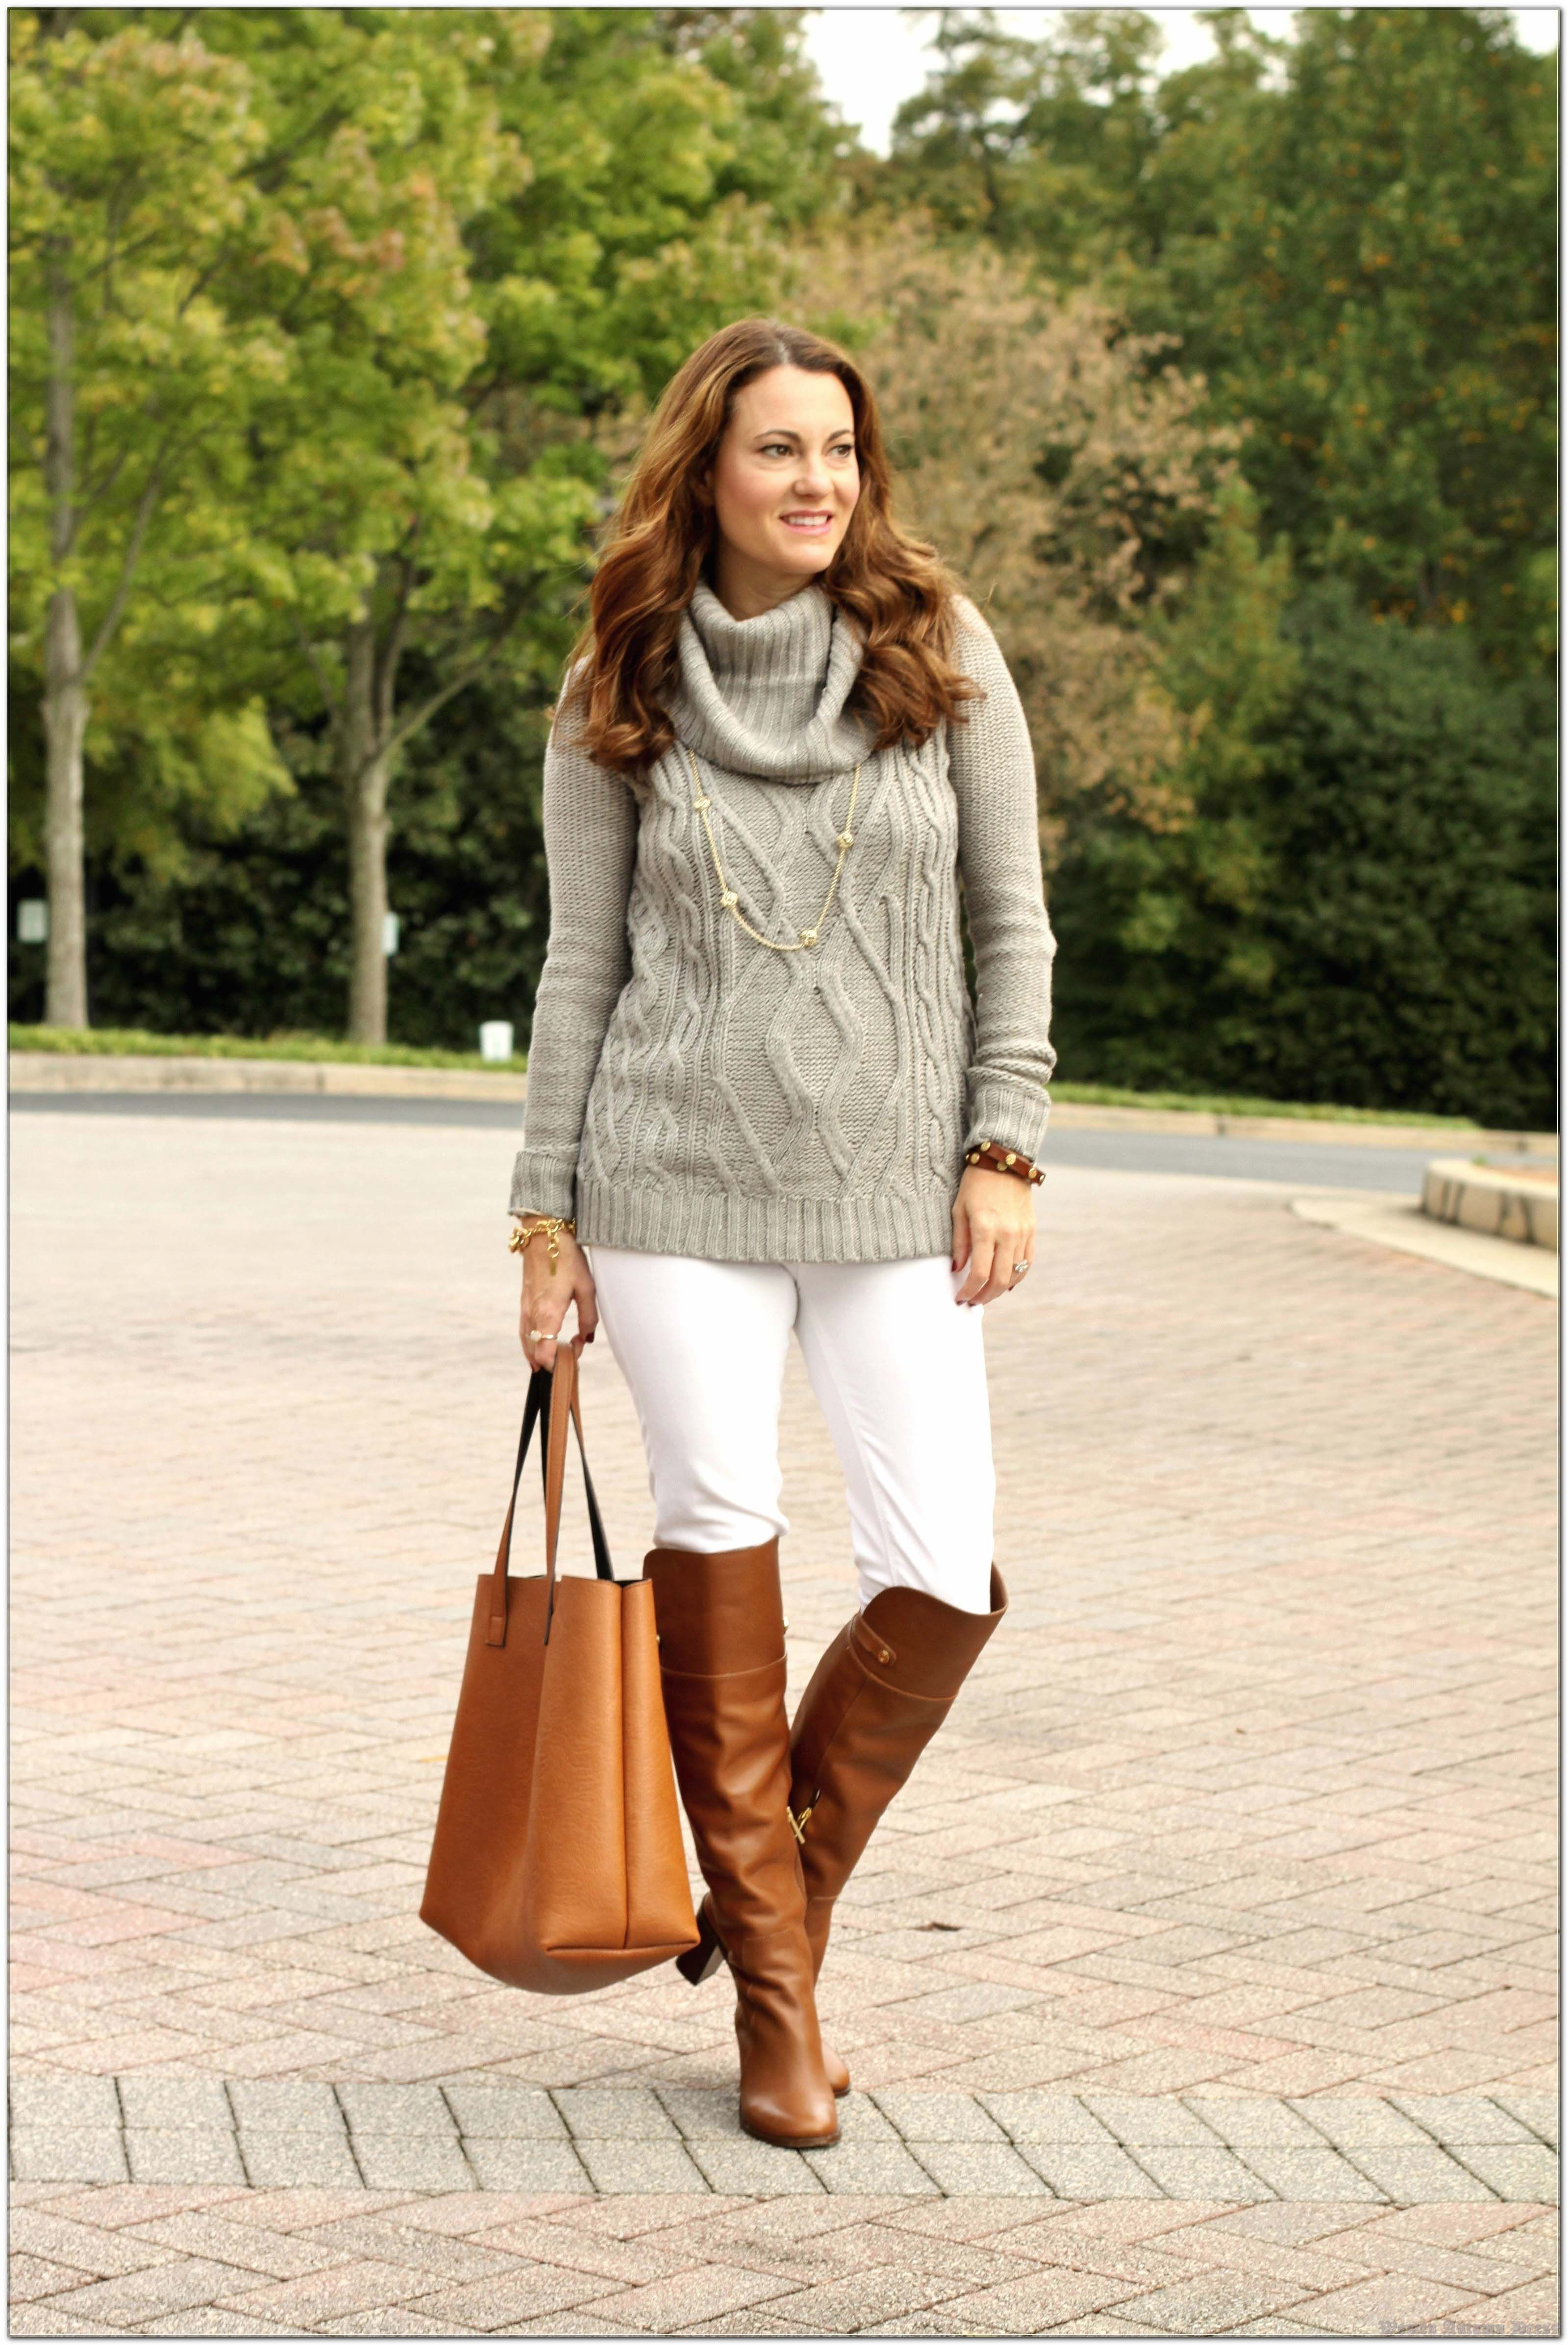 No More Mistakes With Women Autumn Dress